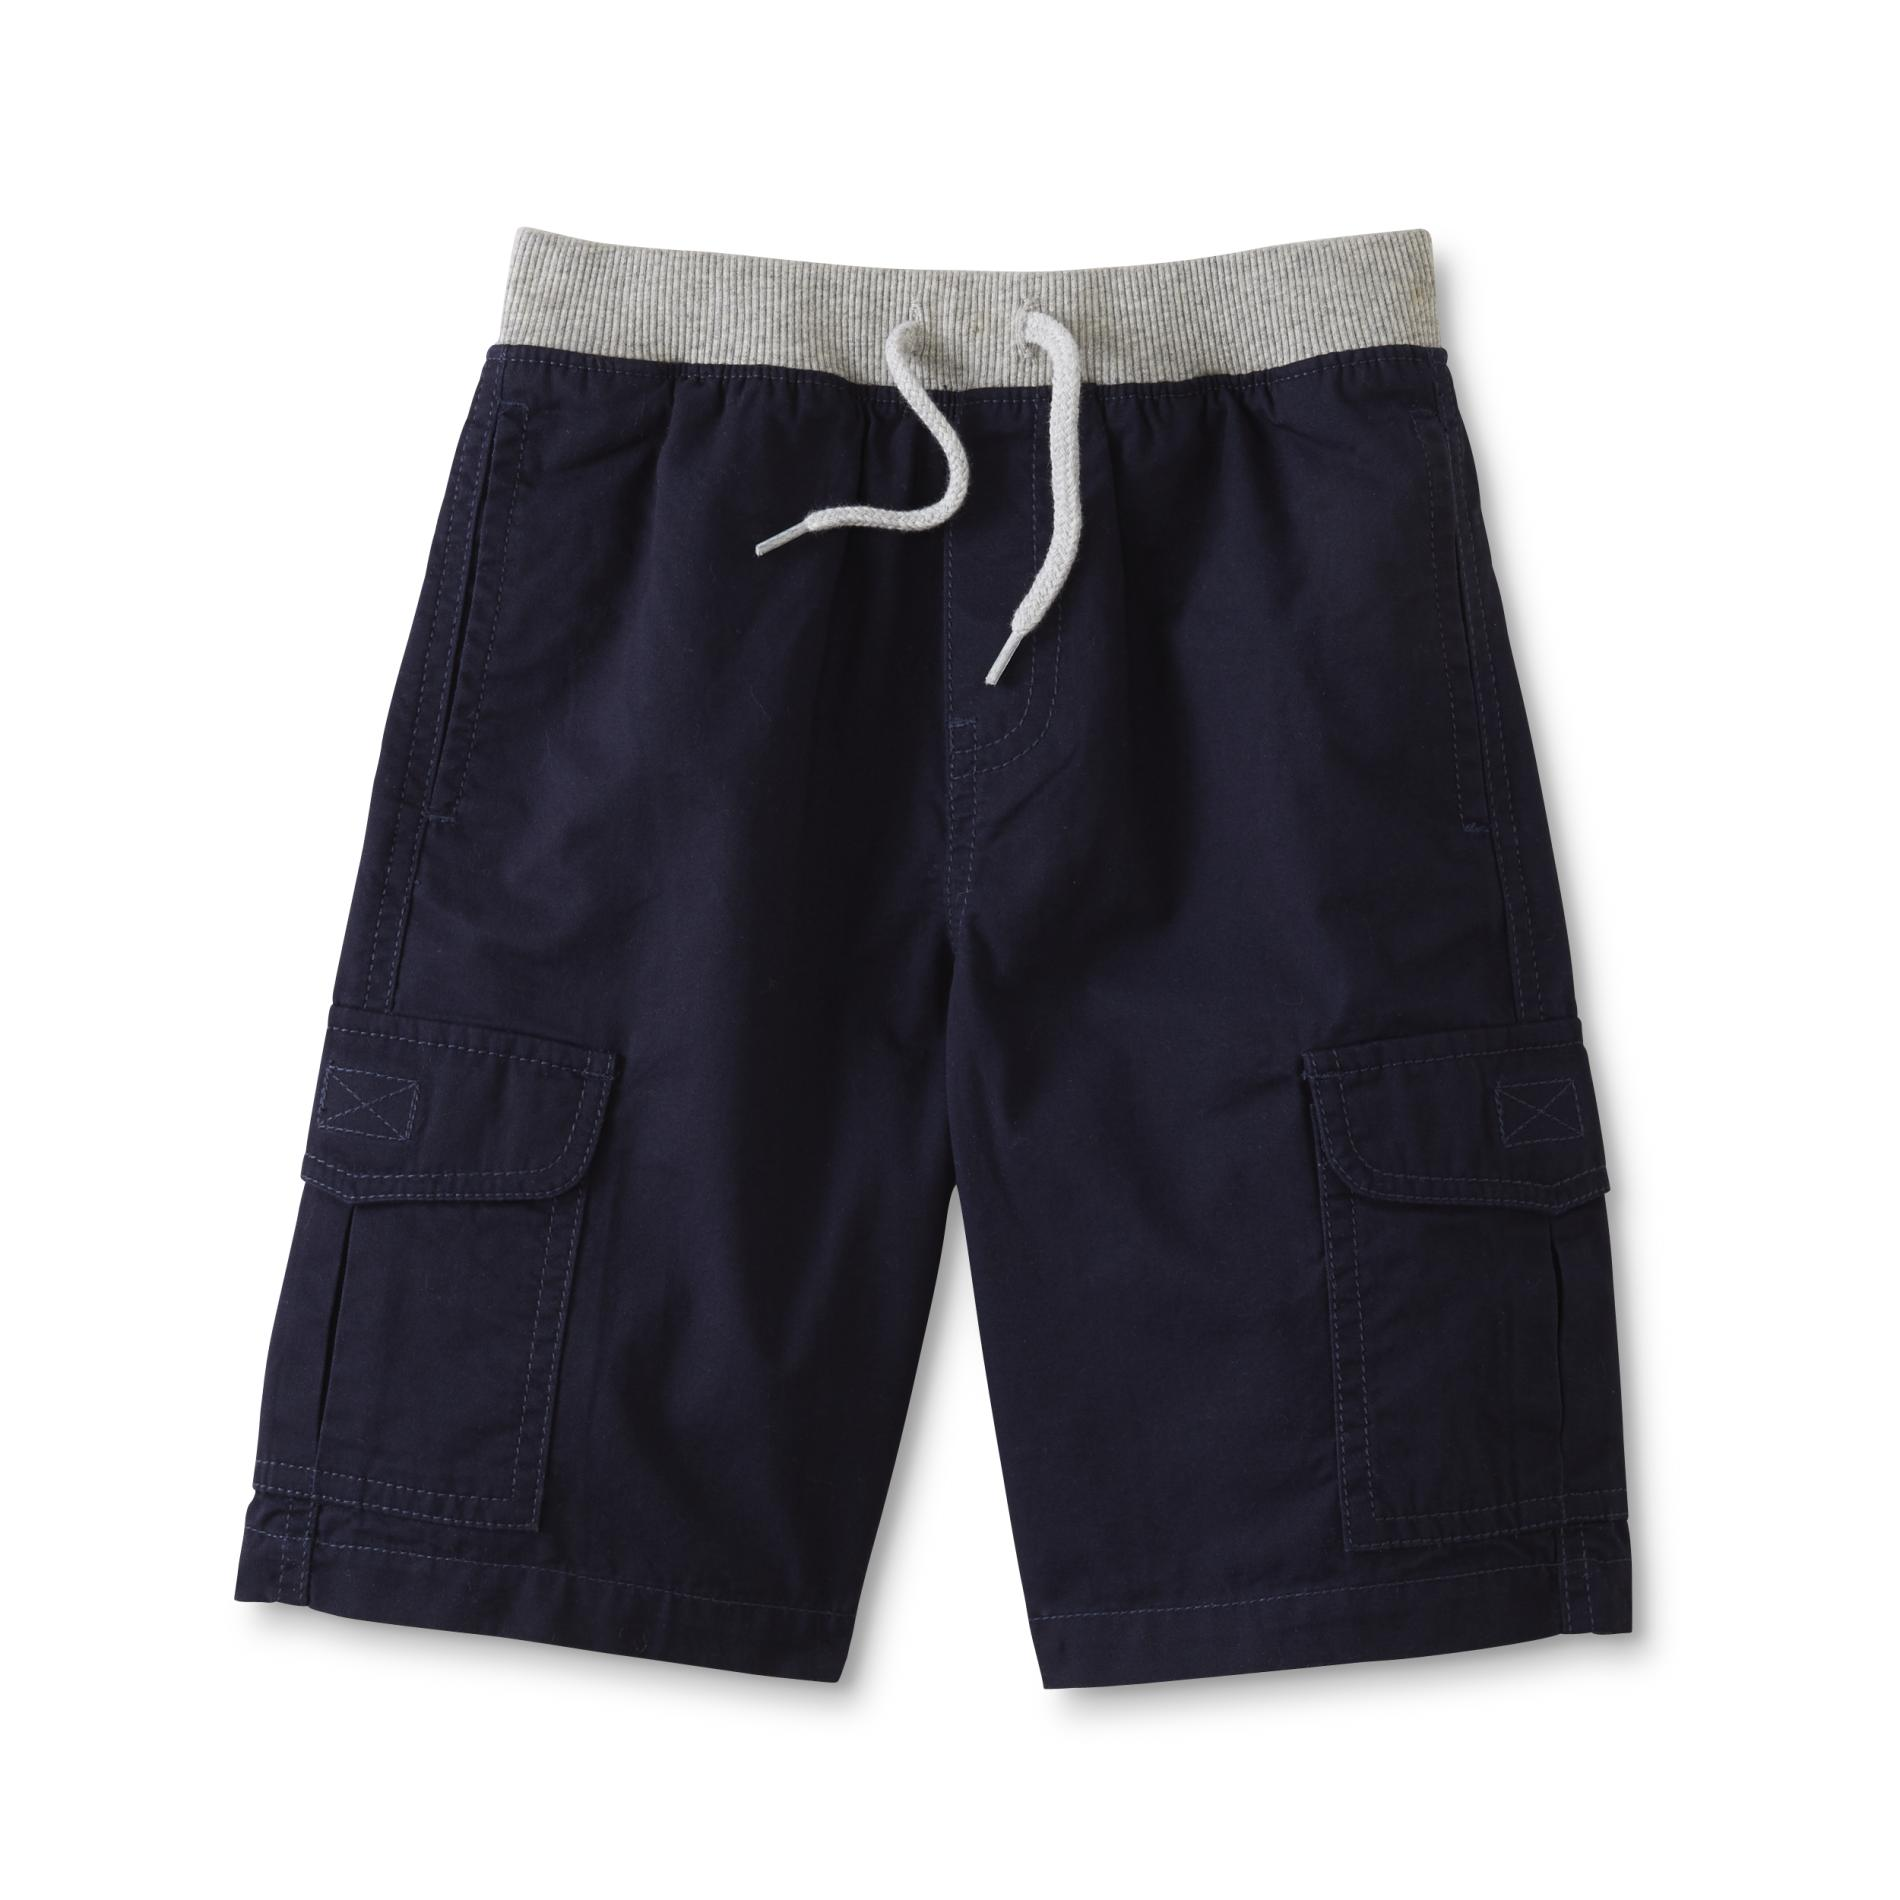 Gap Boys Cargo Shorts Gap offers the selection of boys cargo shorts to showcase your unique and fresh style. Stay ahead of the trends with the boys cargo shorts collection complete with a variety of colors to choose from, allowing you to craft the style that's all your own.